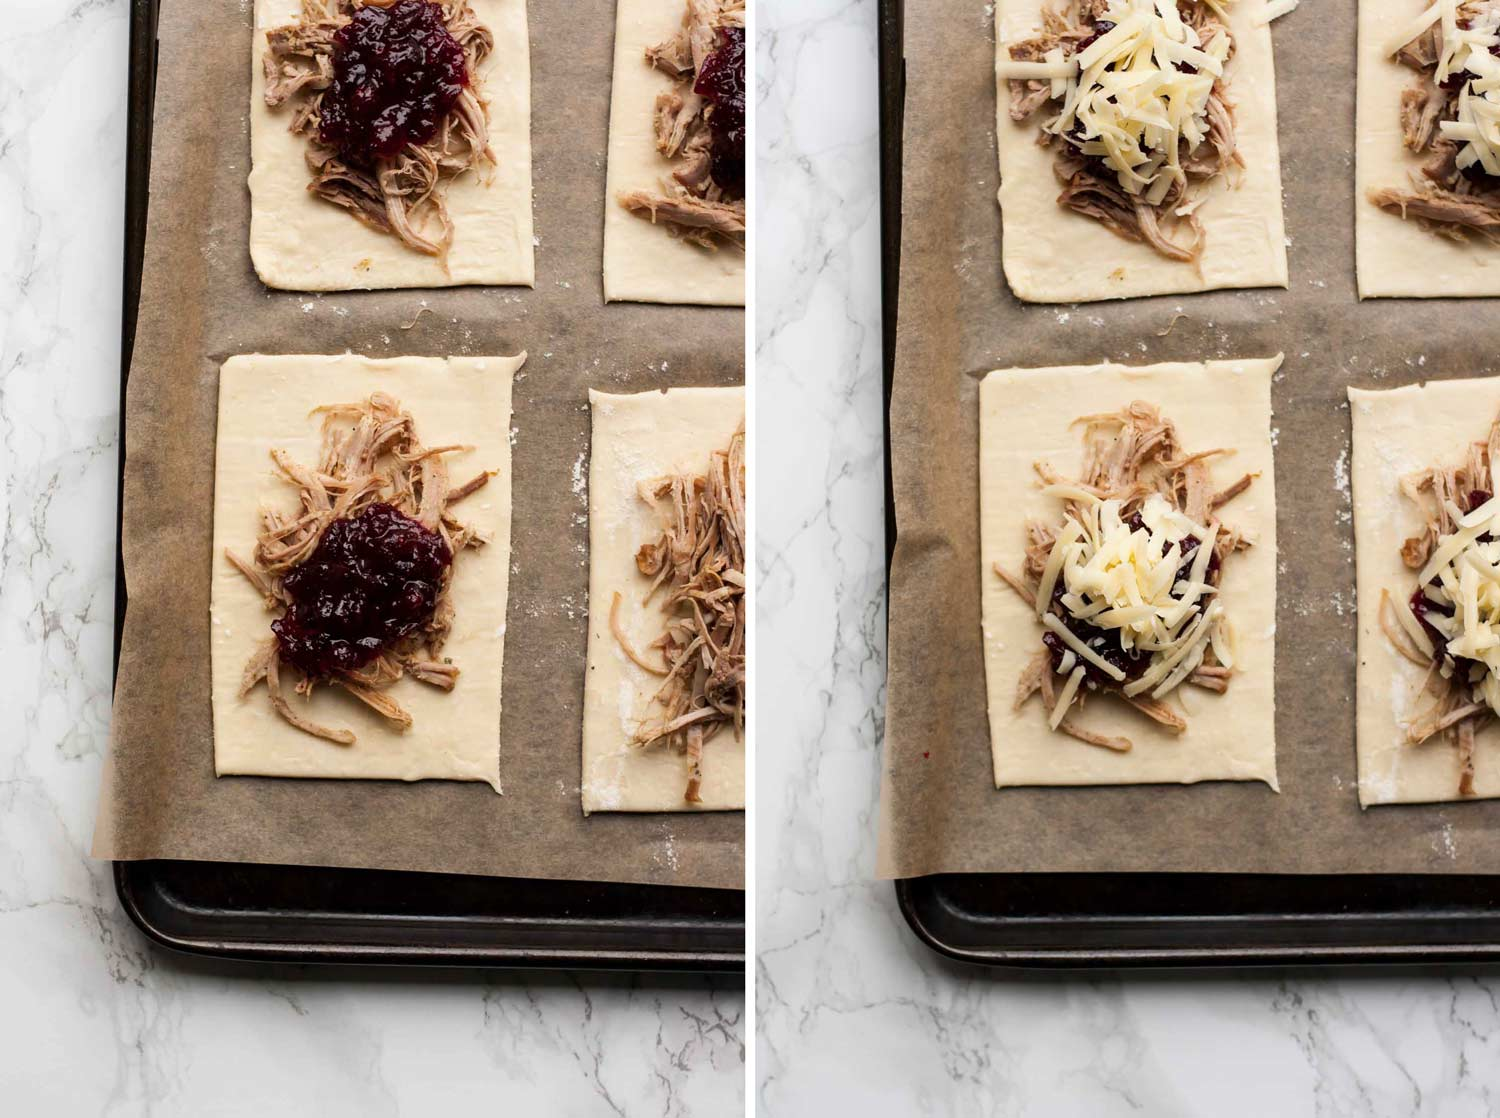 Spiced Leftover Turkey Cranberry Pastries - a simple, yet delicious way to use up those leftovers from Christmas dinner! | eatloveeats.com